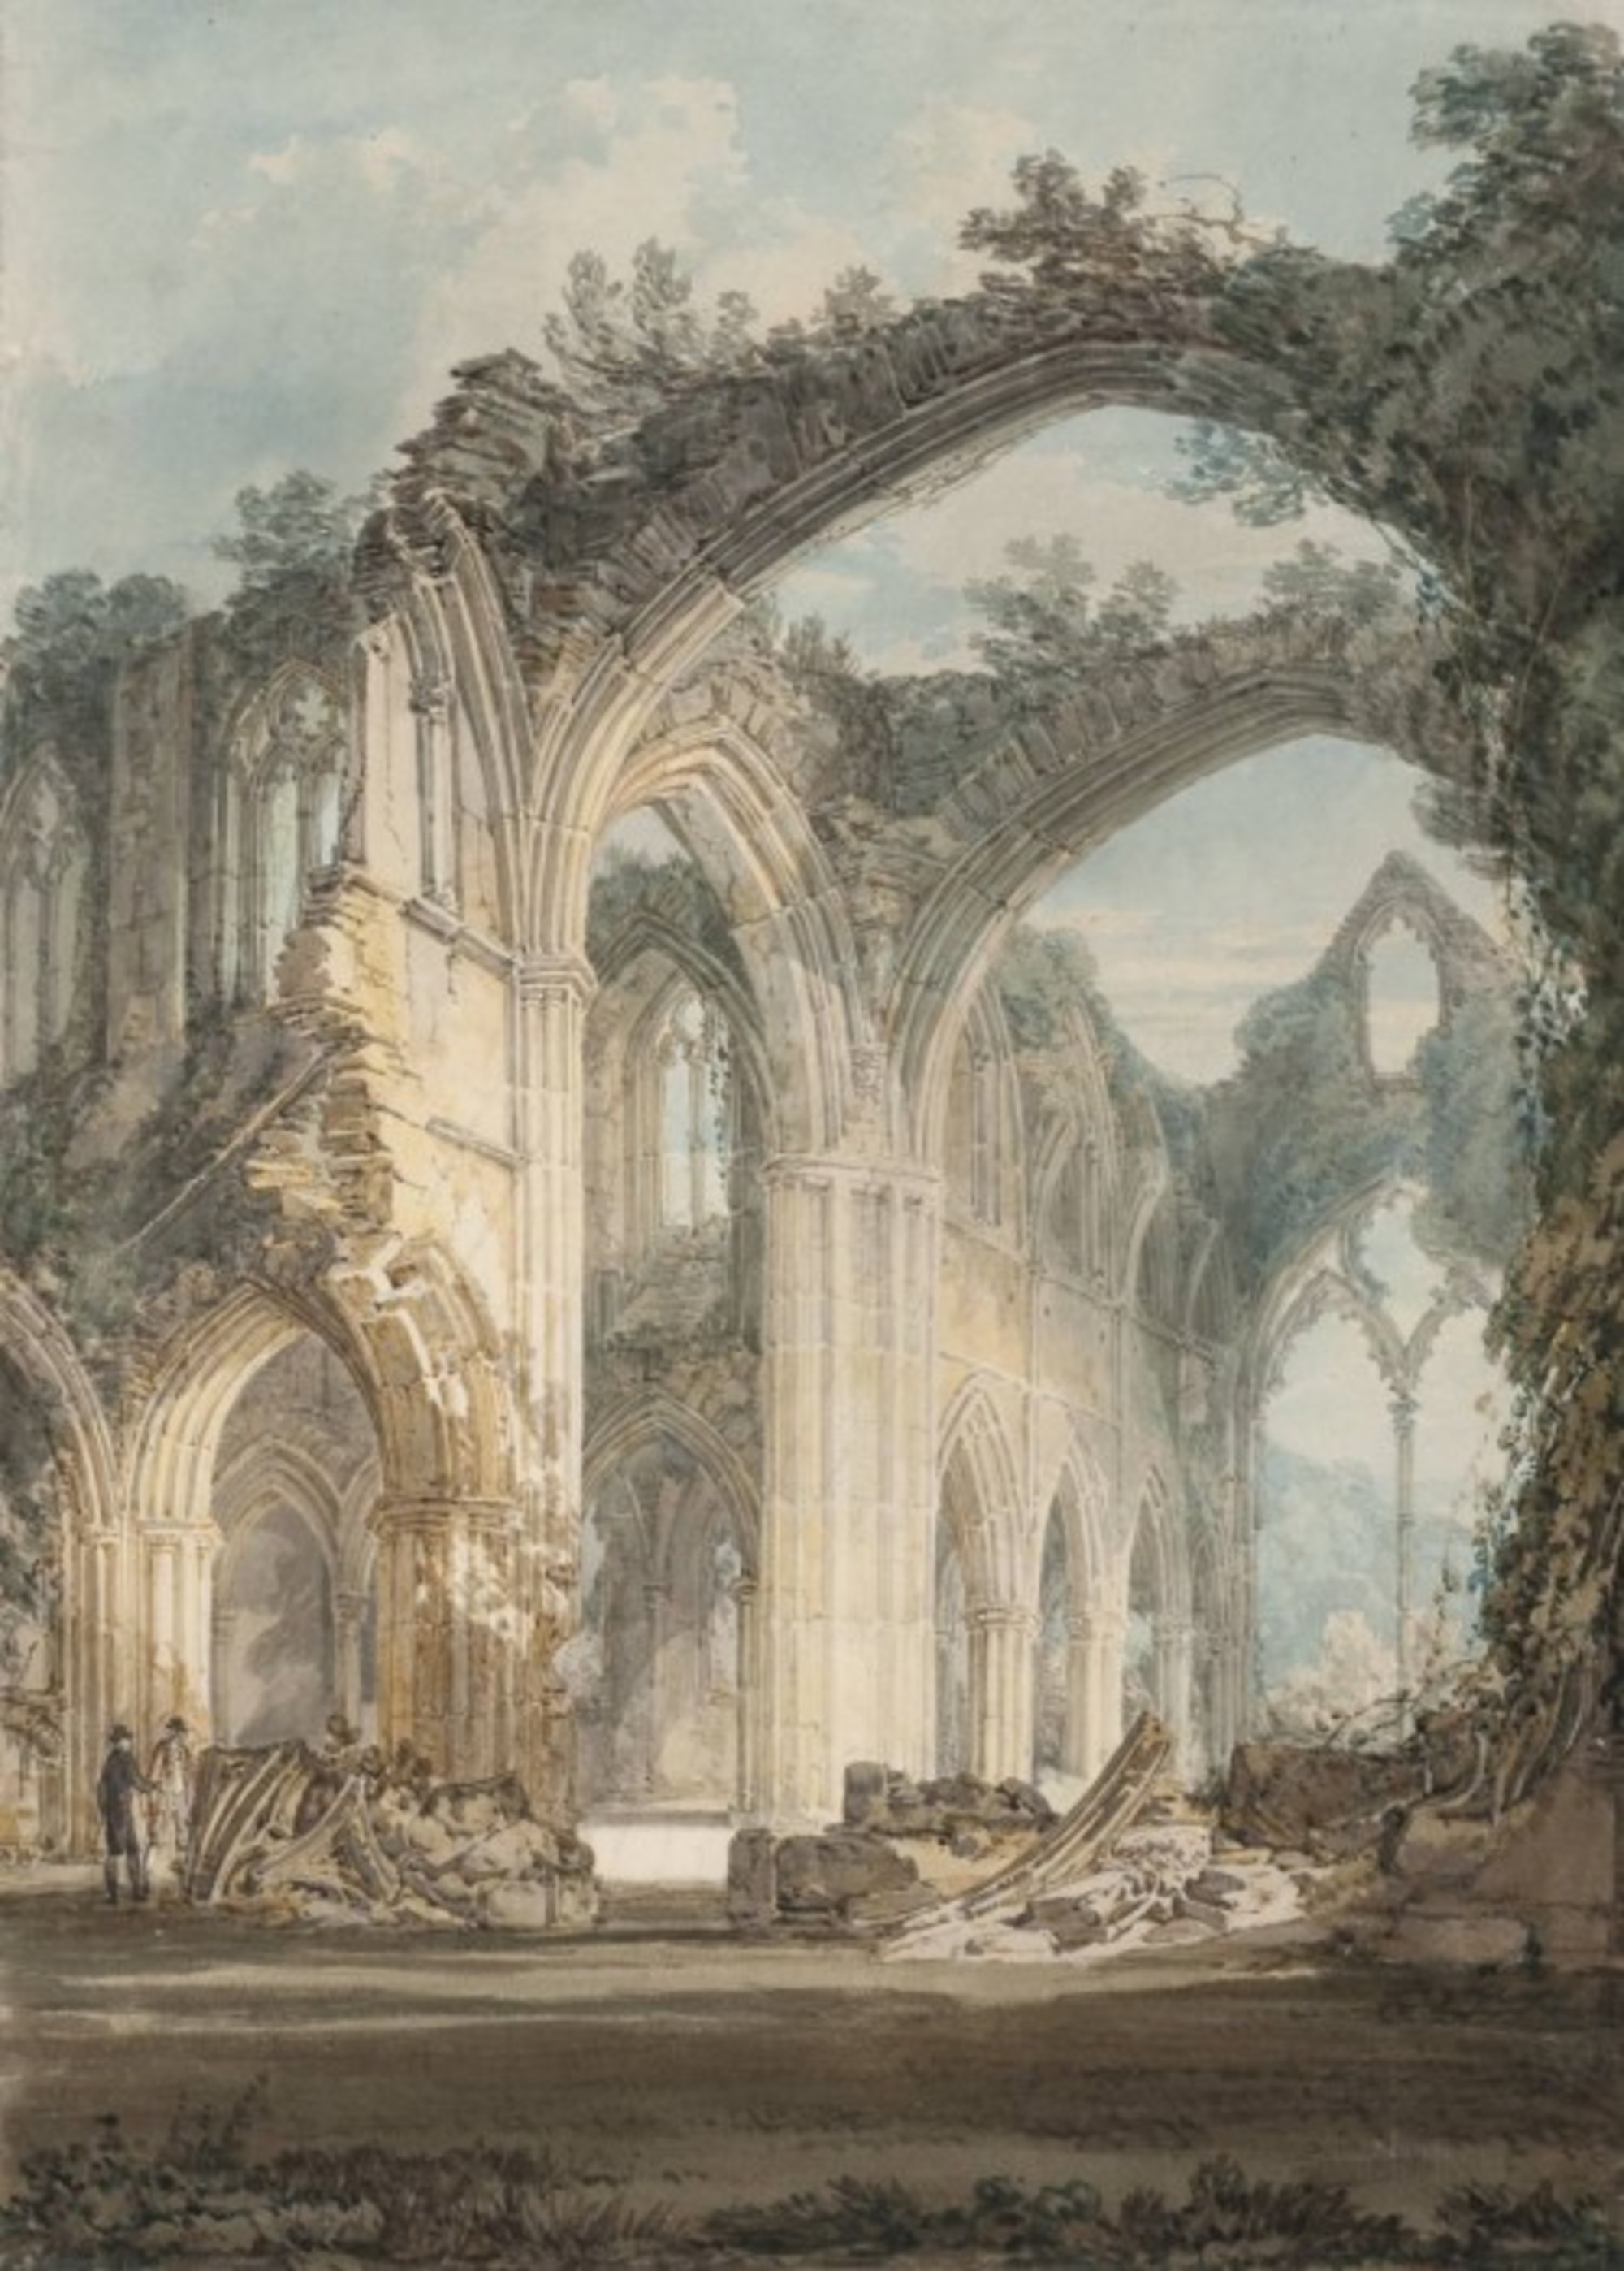 Tintern-Abbey-The-Crossing-and-Chancel-Looking-towards-the-East-Window-1794.jpg